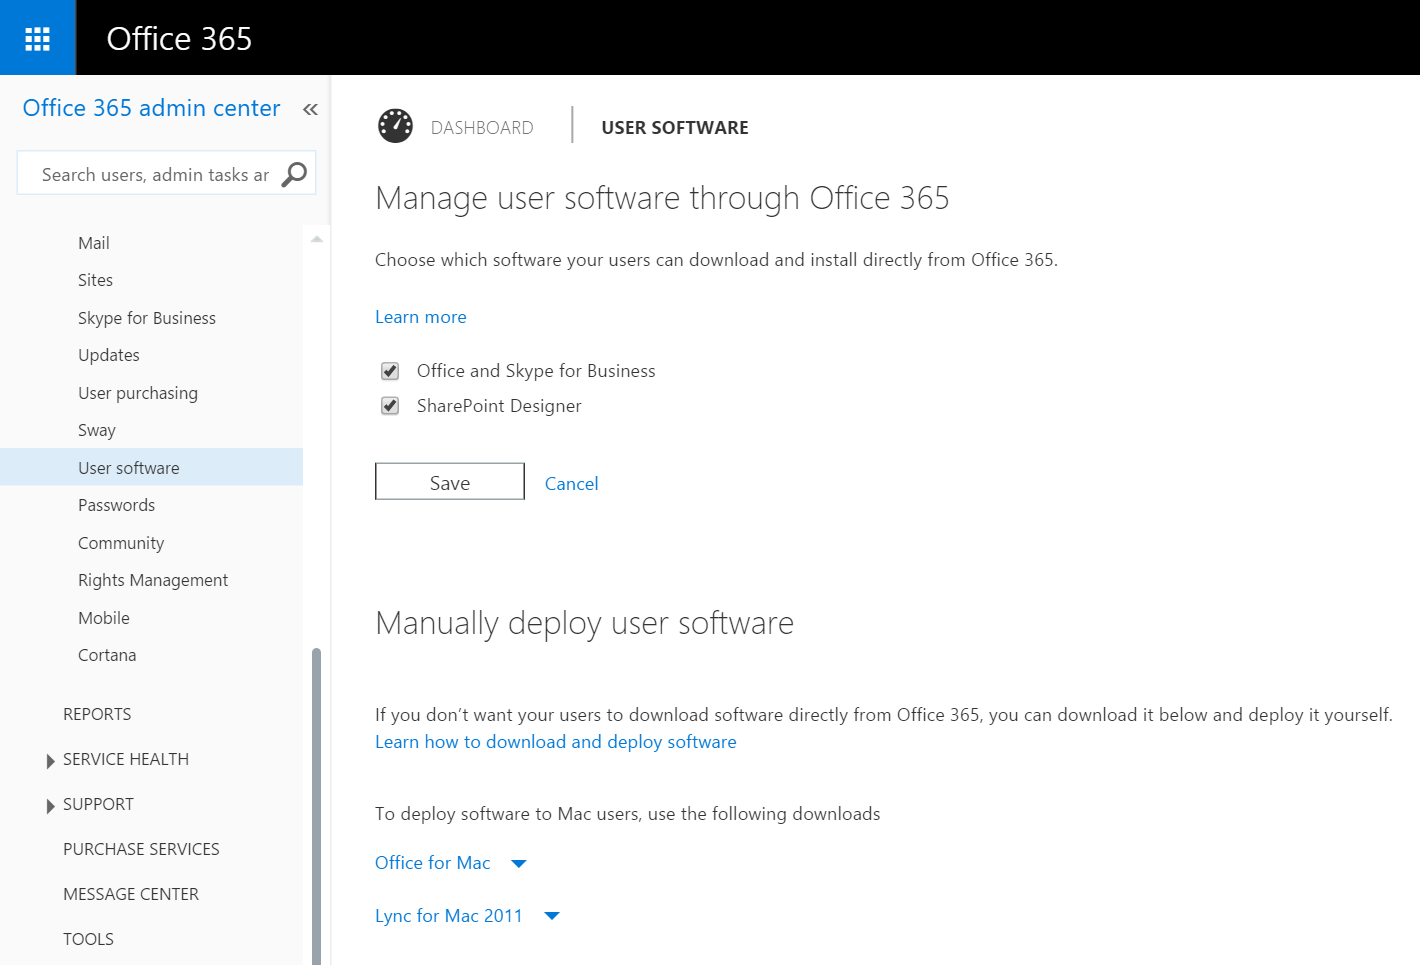 Office 365 User Software